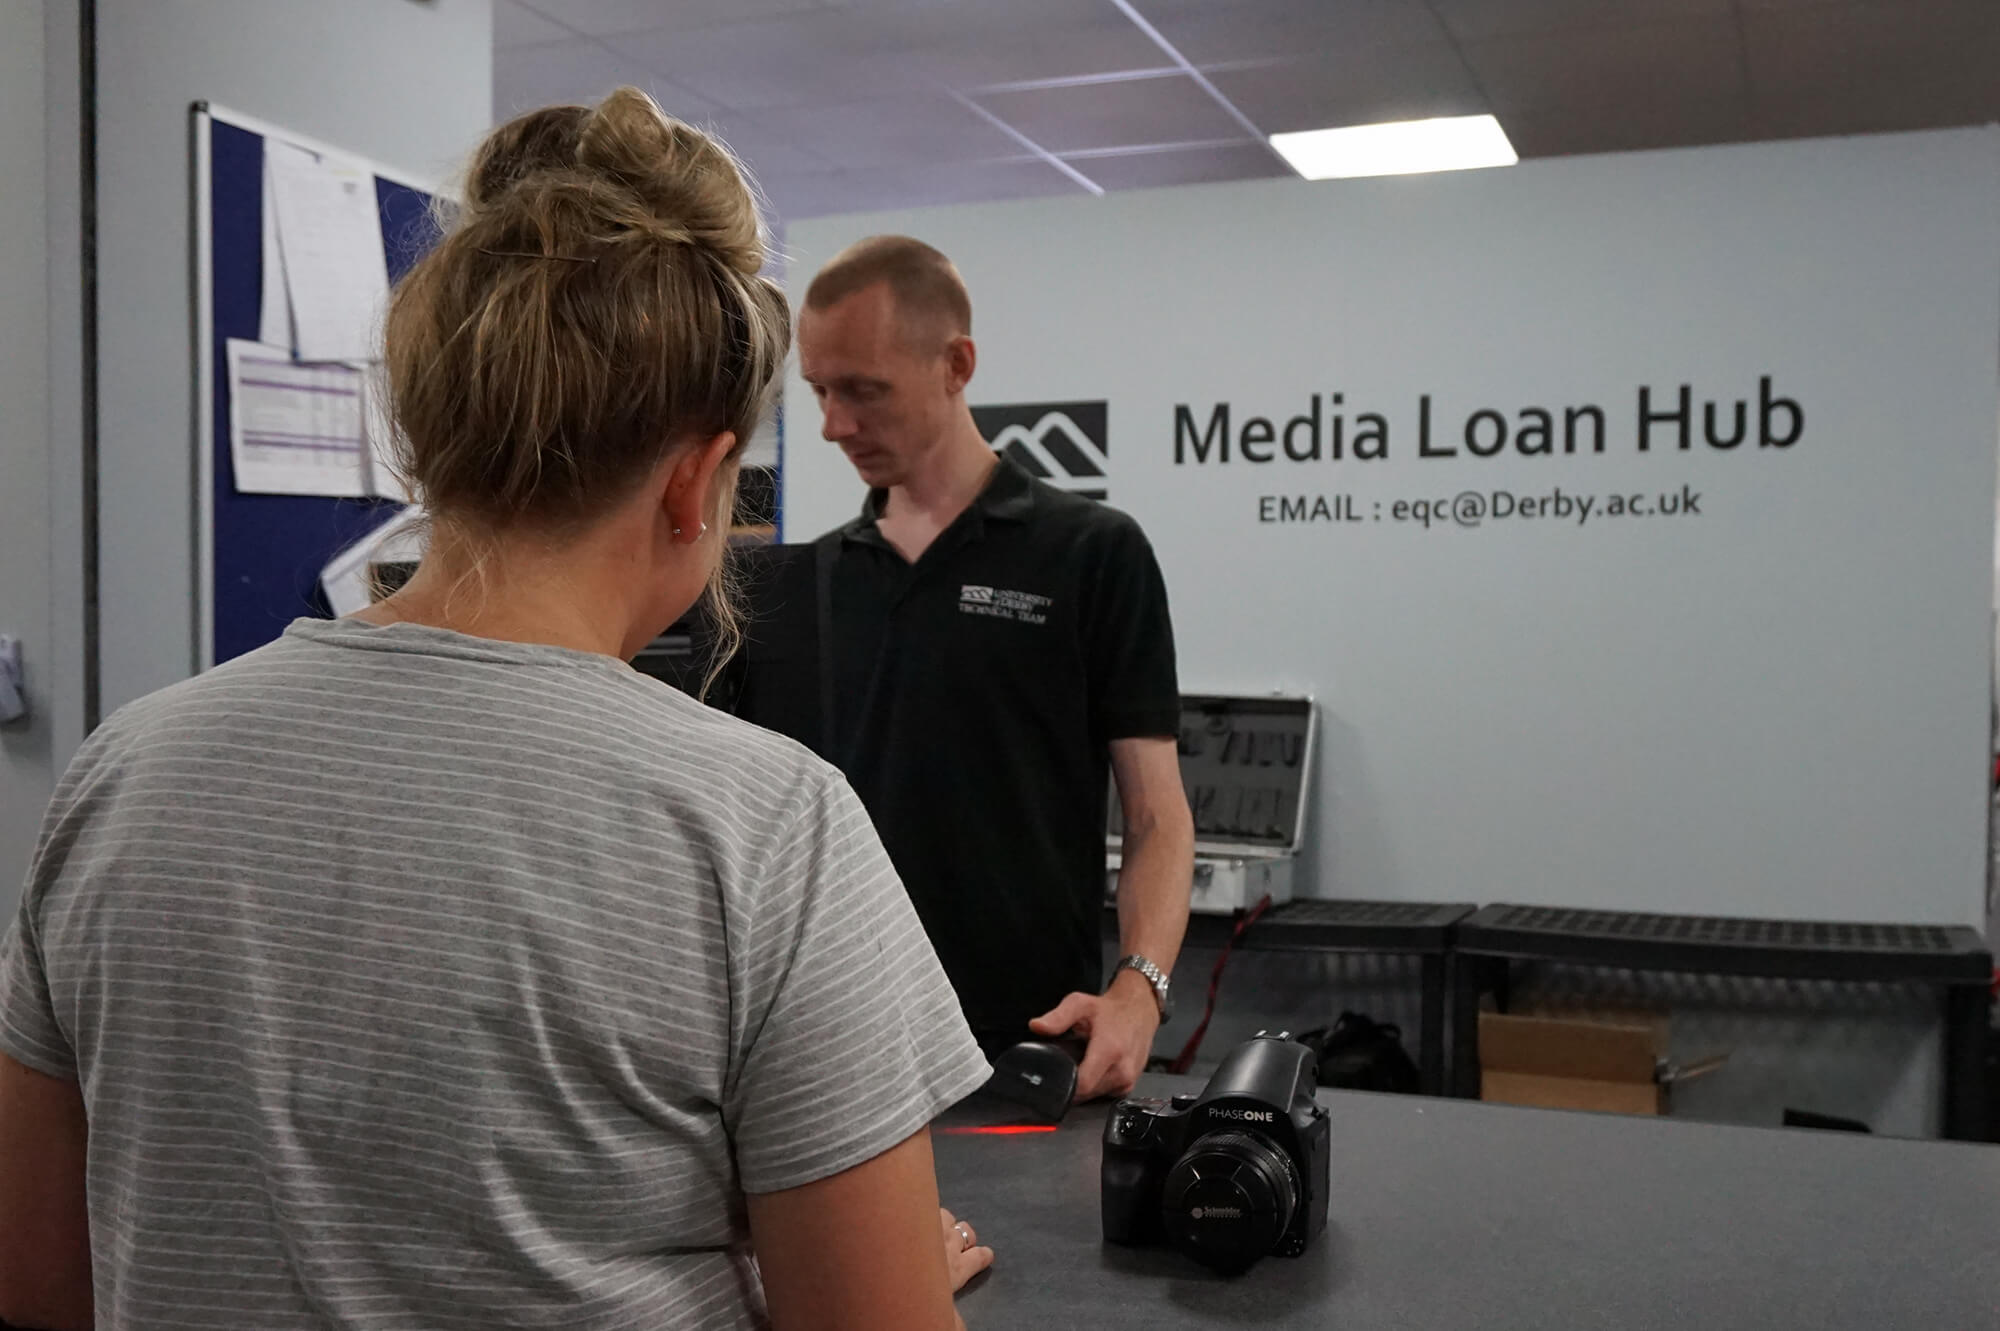 Student booking out equipment at the Media Loan Hub